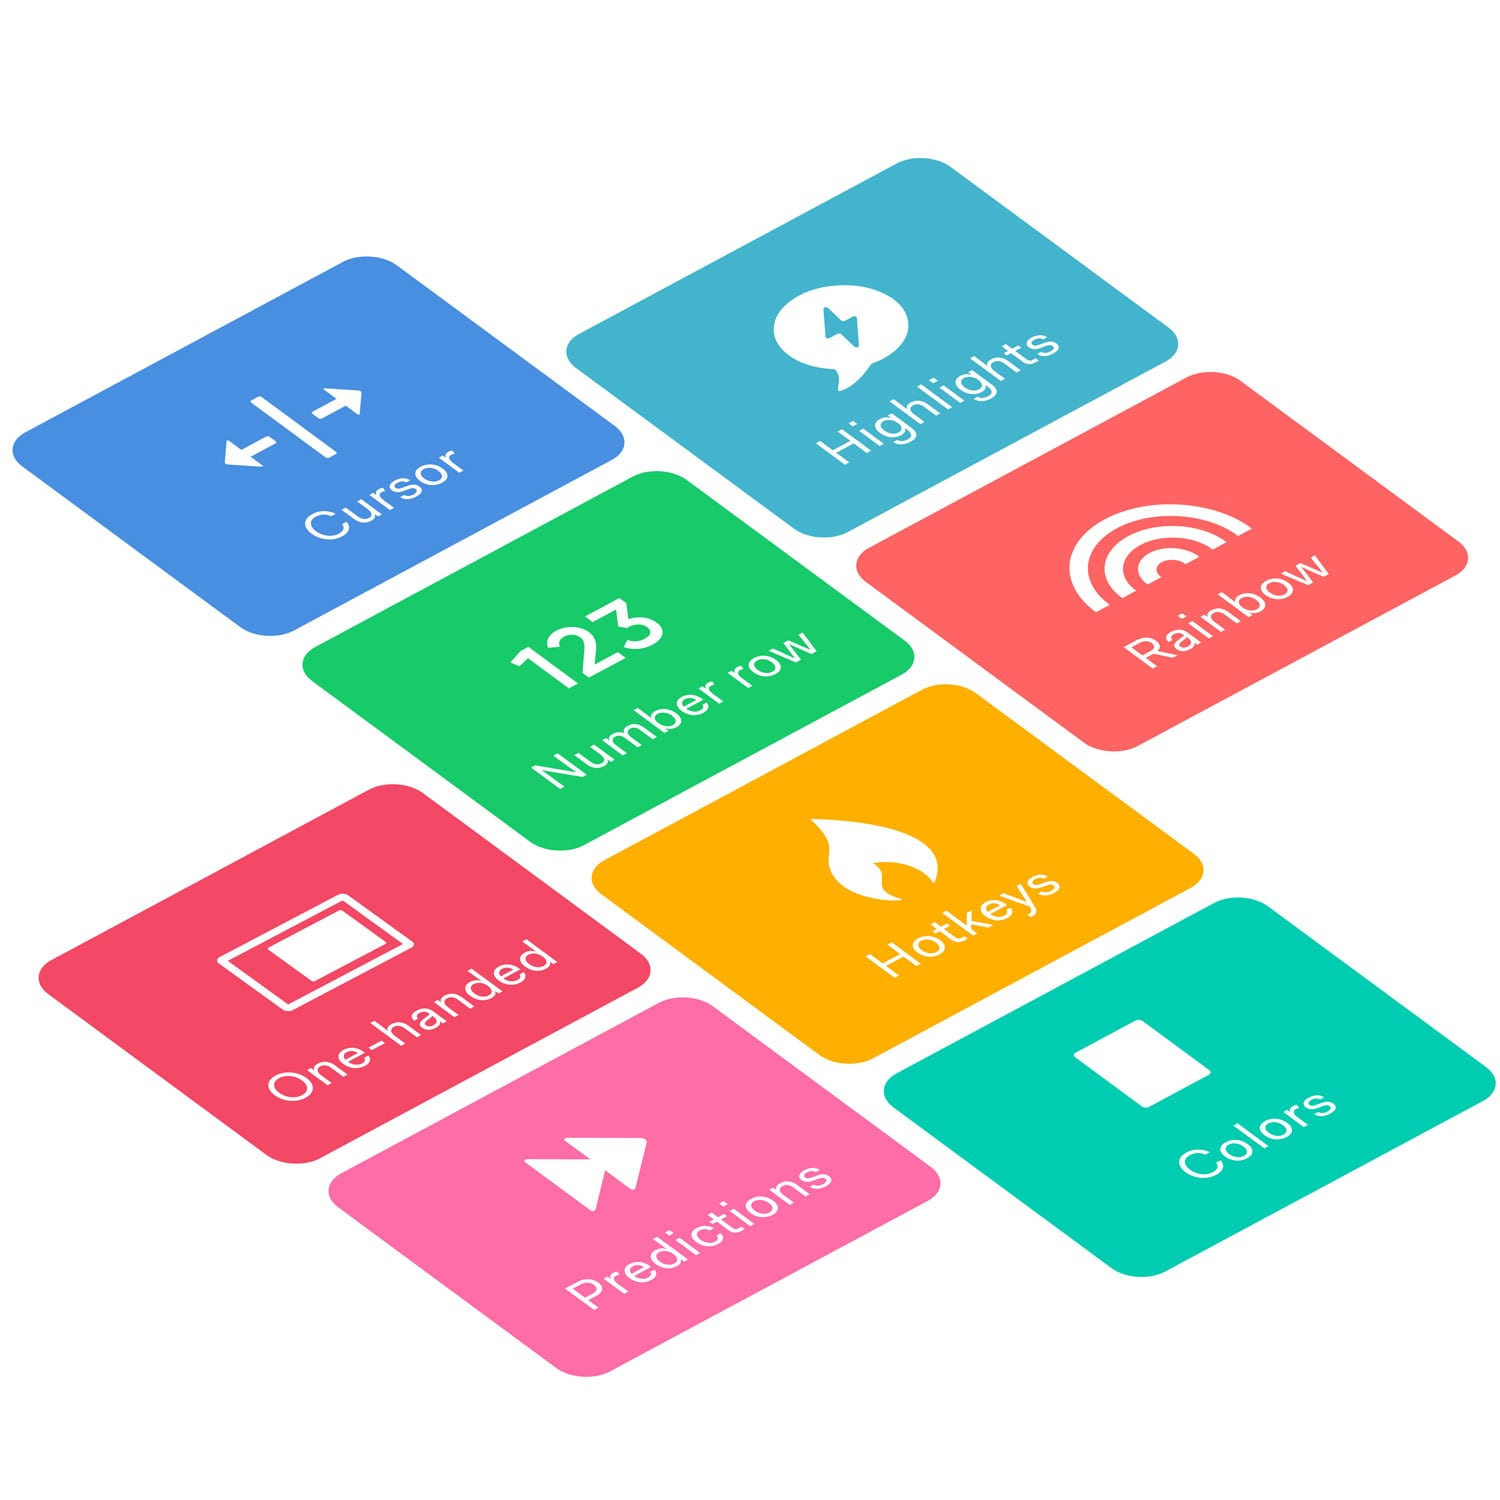 fleksy-keyboard-has-powerful-extensions-to-choose-from-number-row-hot-keys-shortcuts-app-launcher-highlights